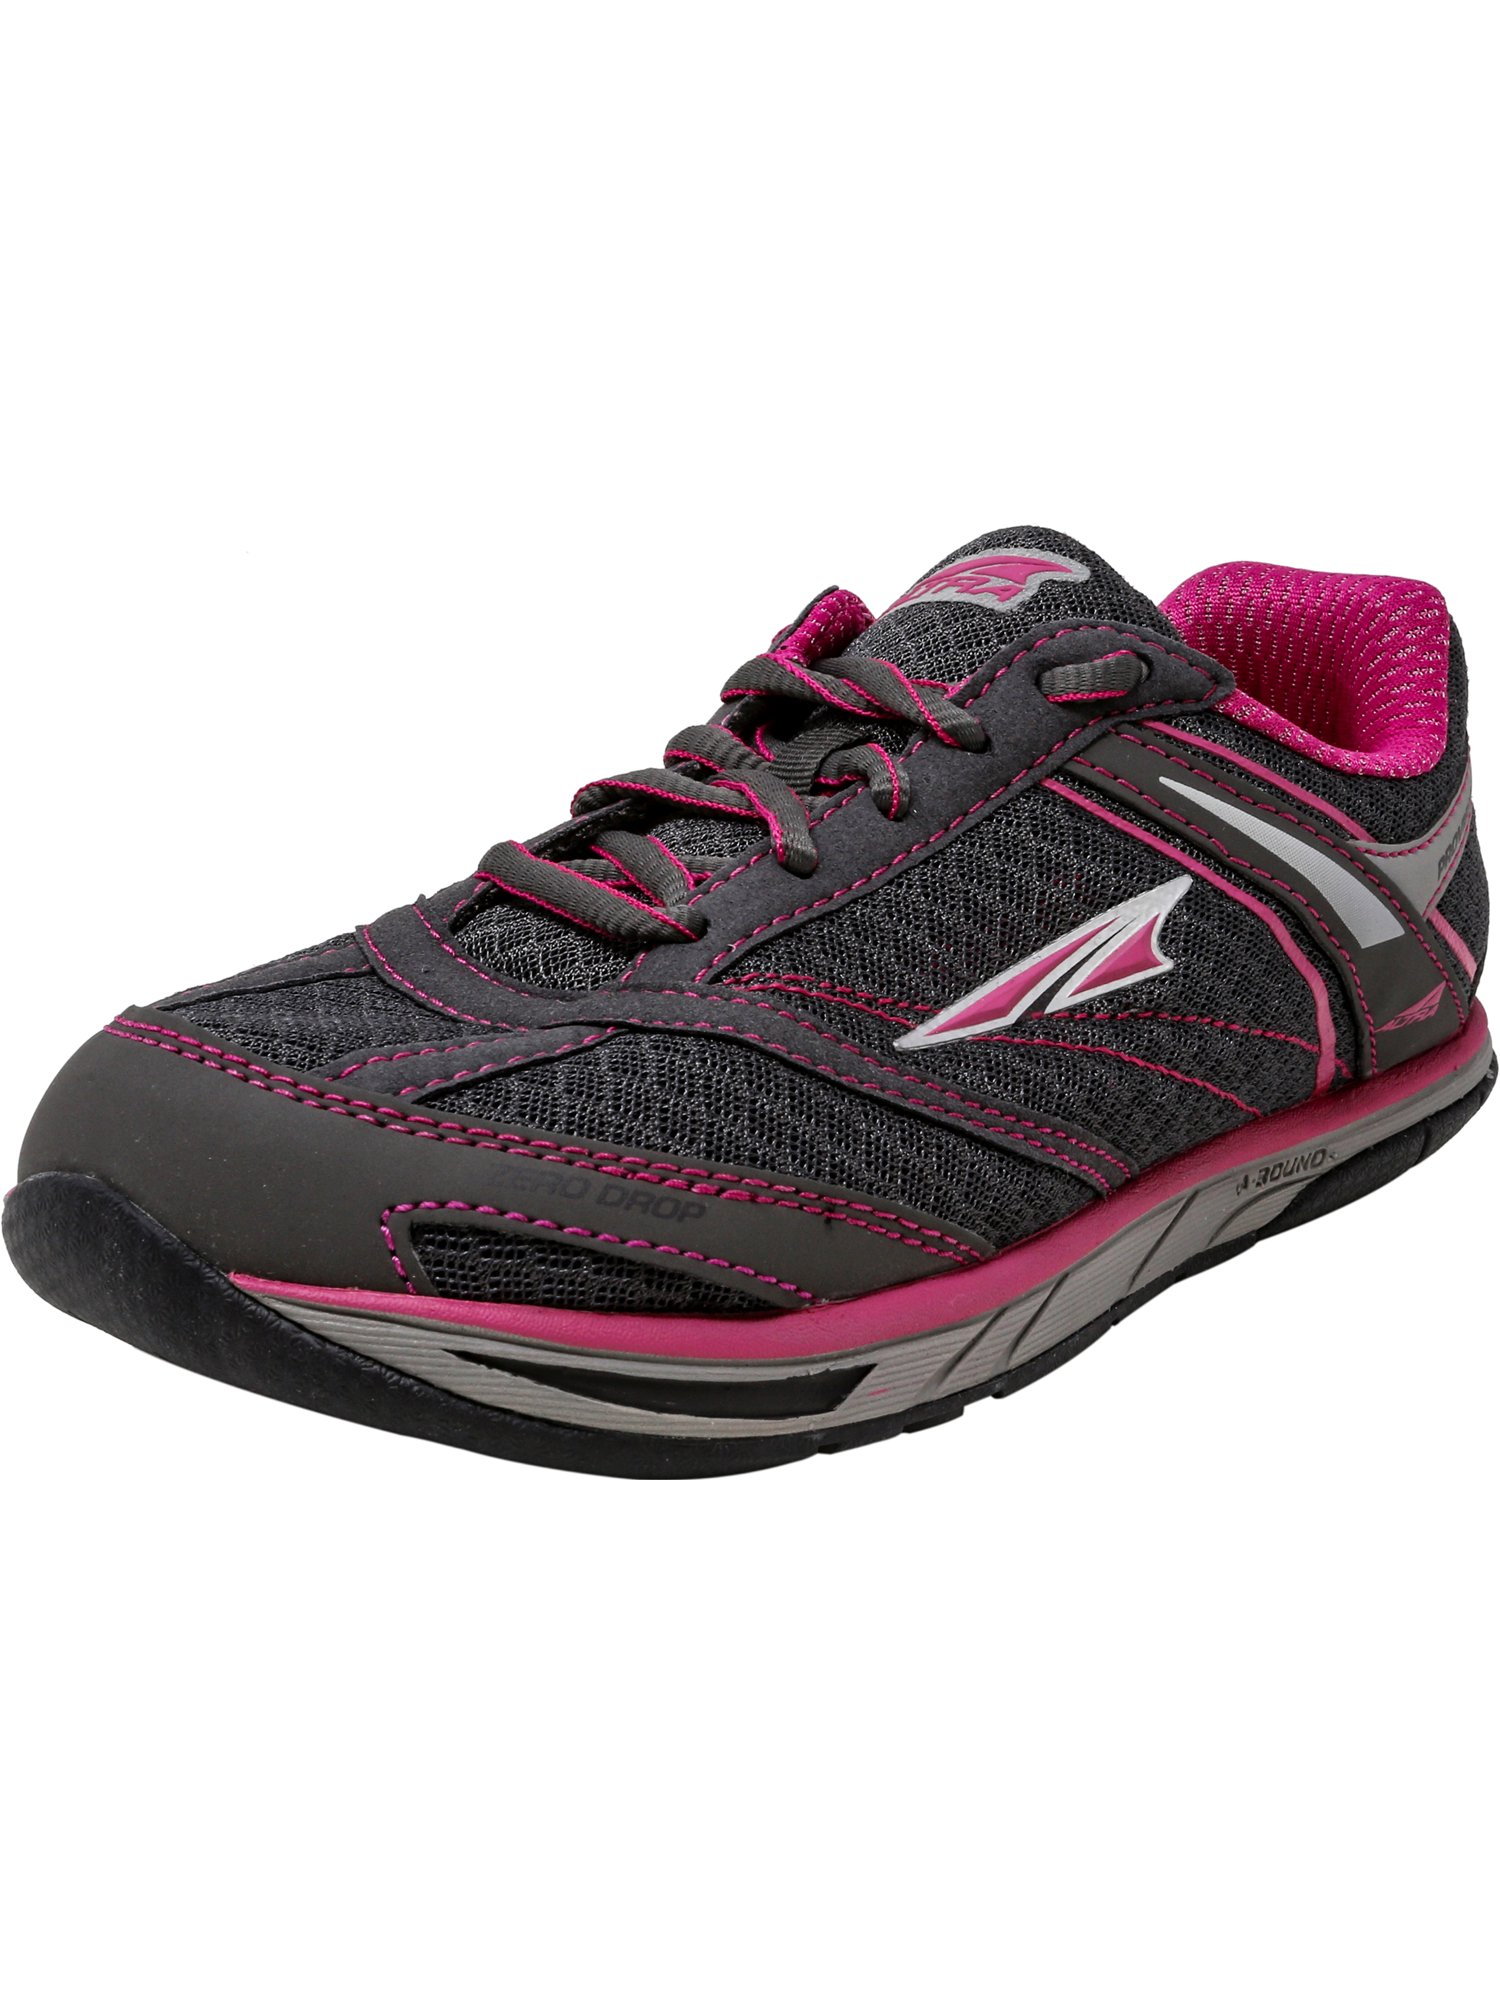 Altra Women's Provioness Charcoal / Magenta Ankle-High Running Shoe - 5.5M